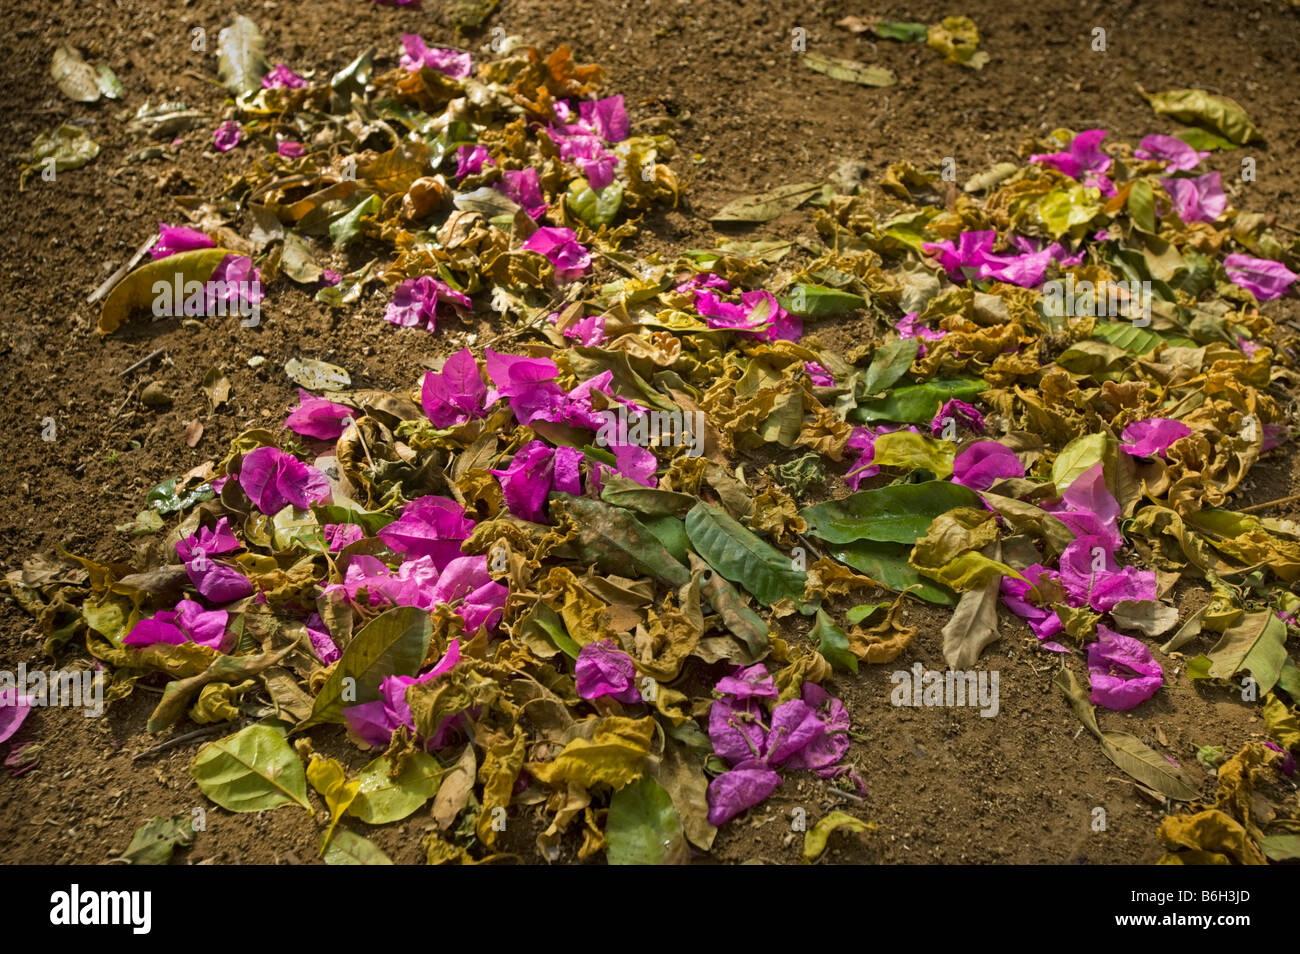 morning impression red pink lila lilac Flor bloom blossom flower blossoms of Bougainvillea on land floor ground - Stock Image